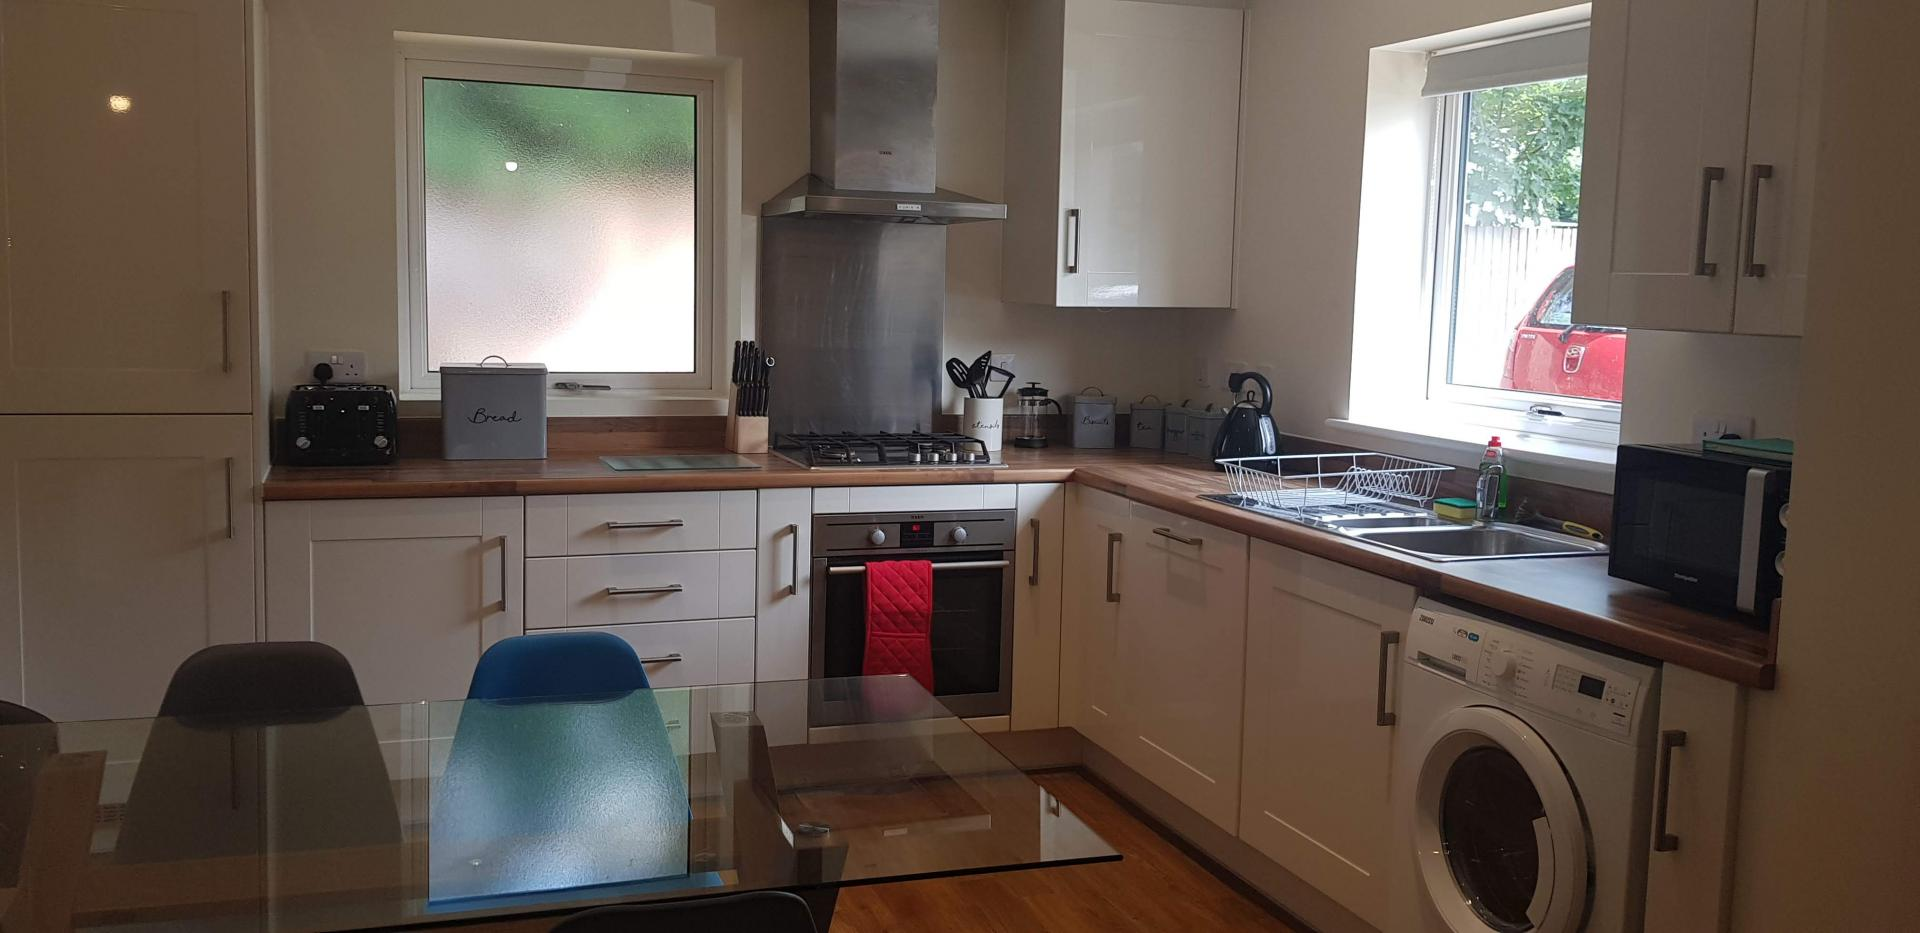 Kitchen at Moore Close Apartment, Inner Avenue, Southampton - Citybase Apartments